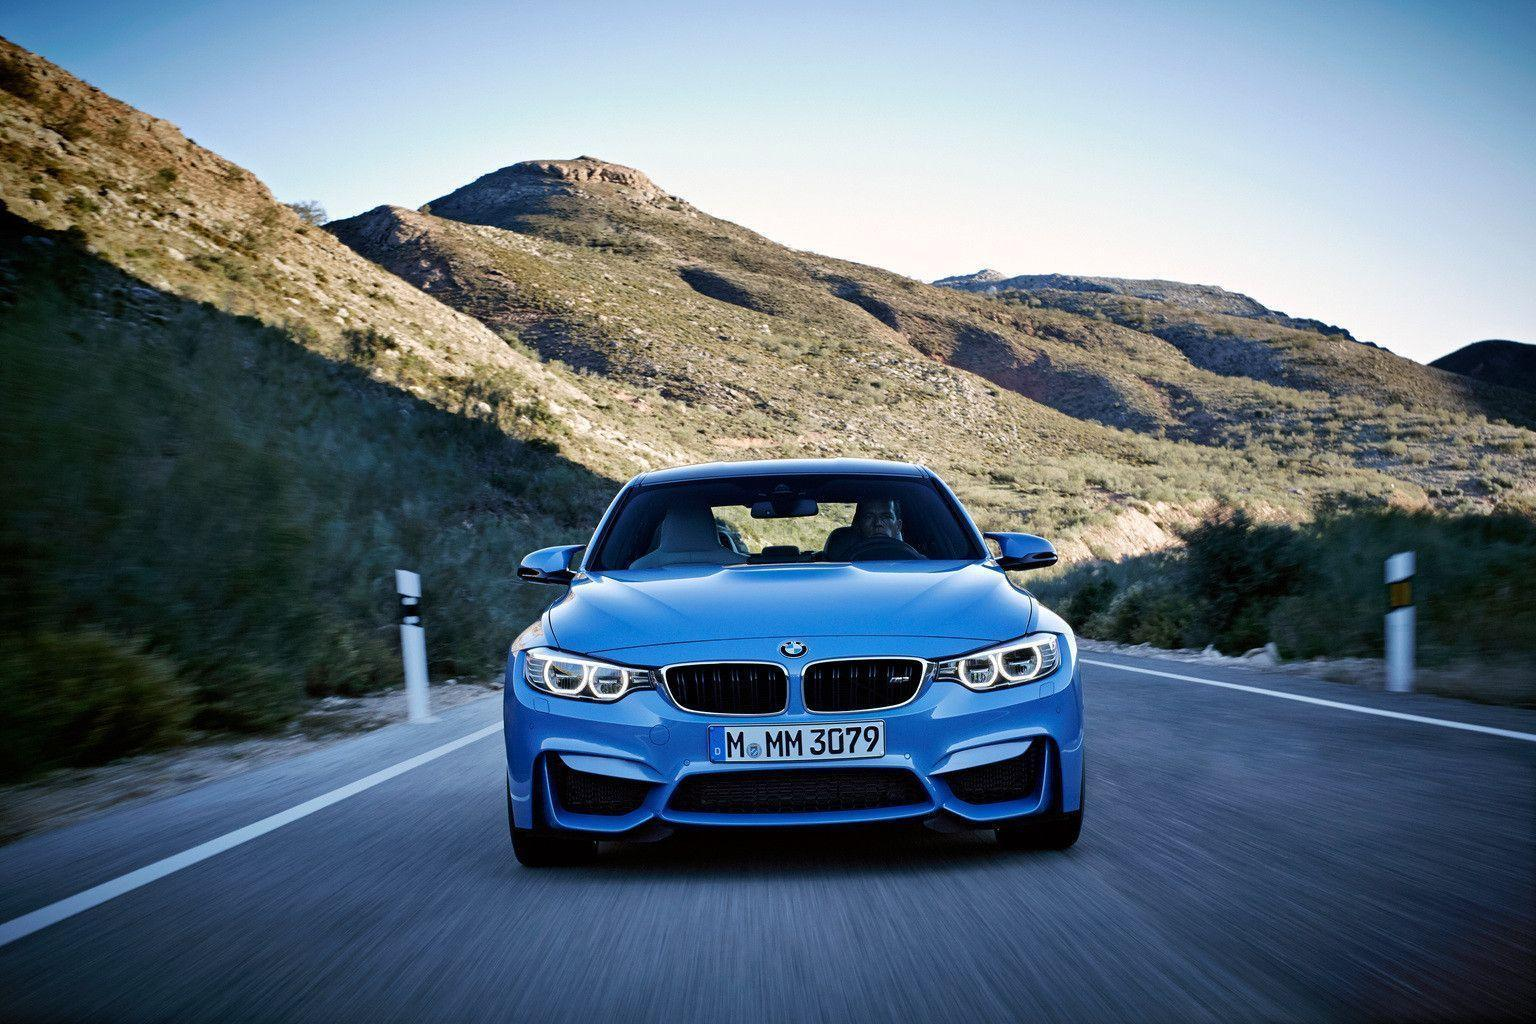 BMW M3 Wallpapers 1536x1024